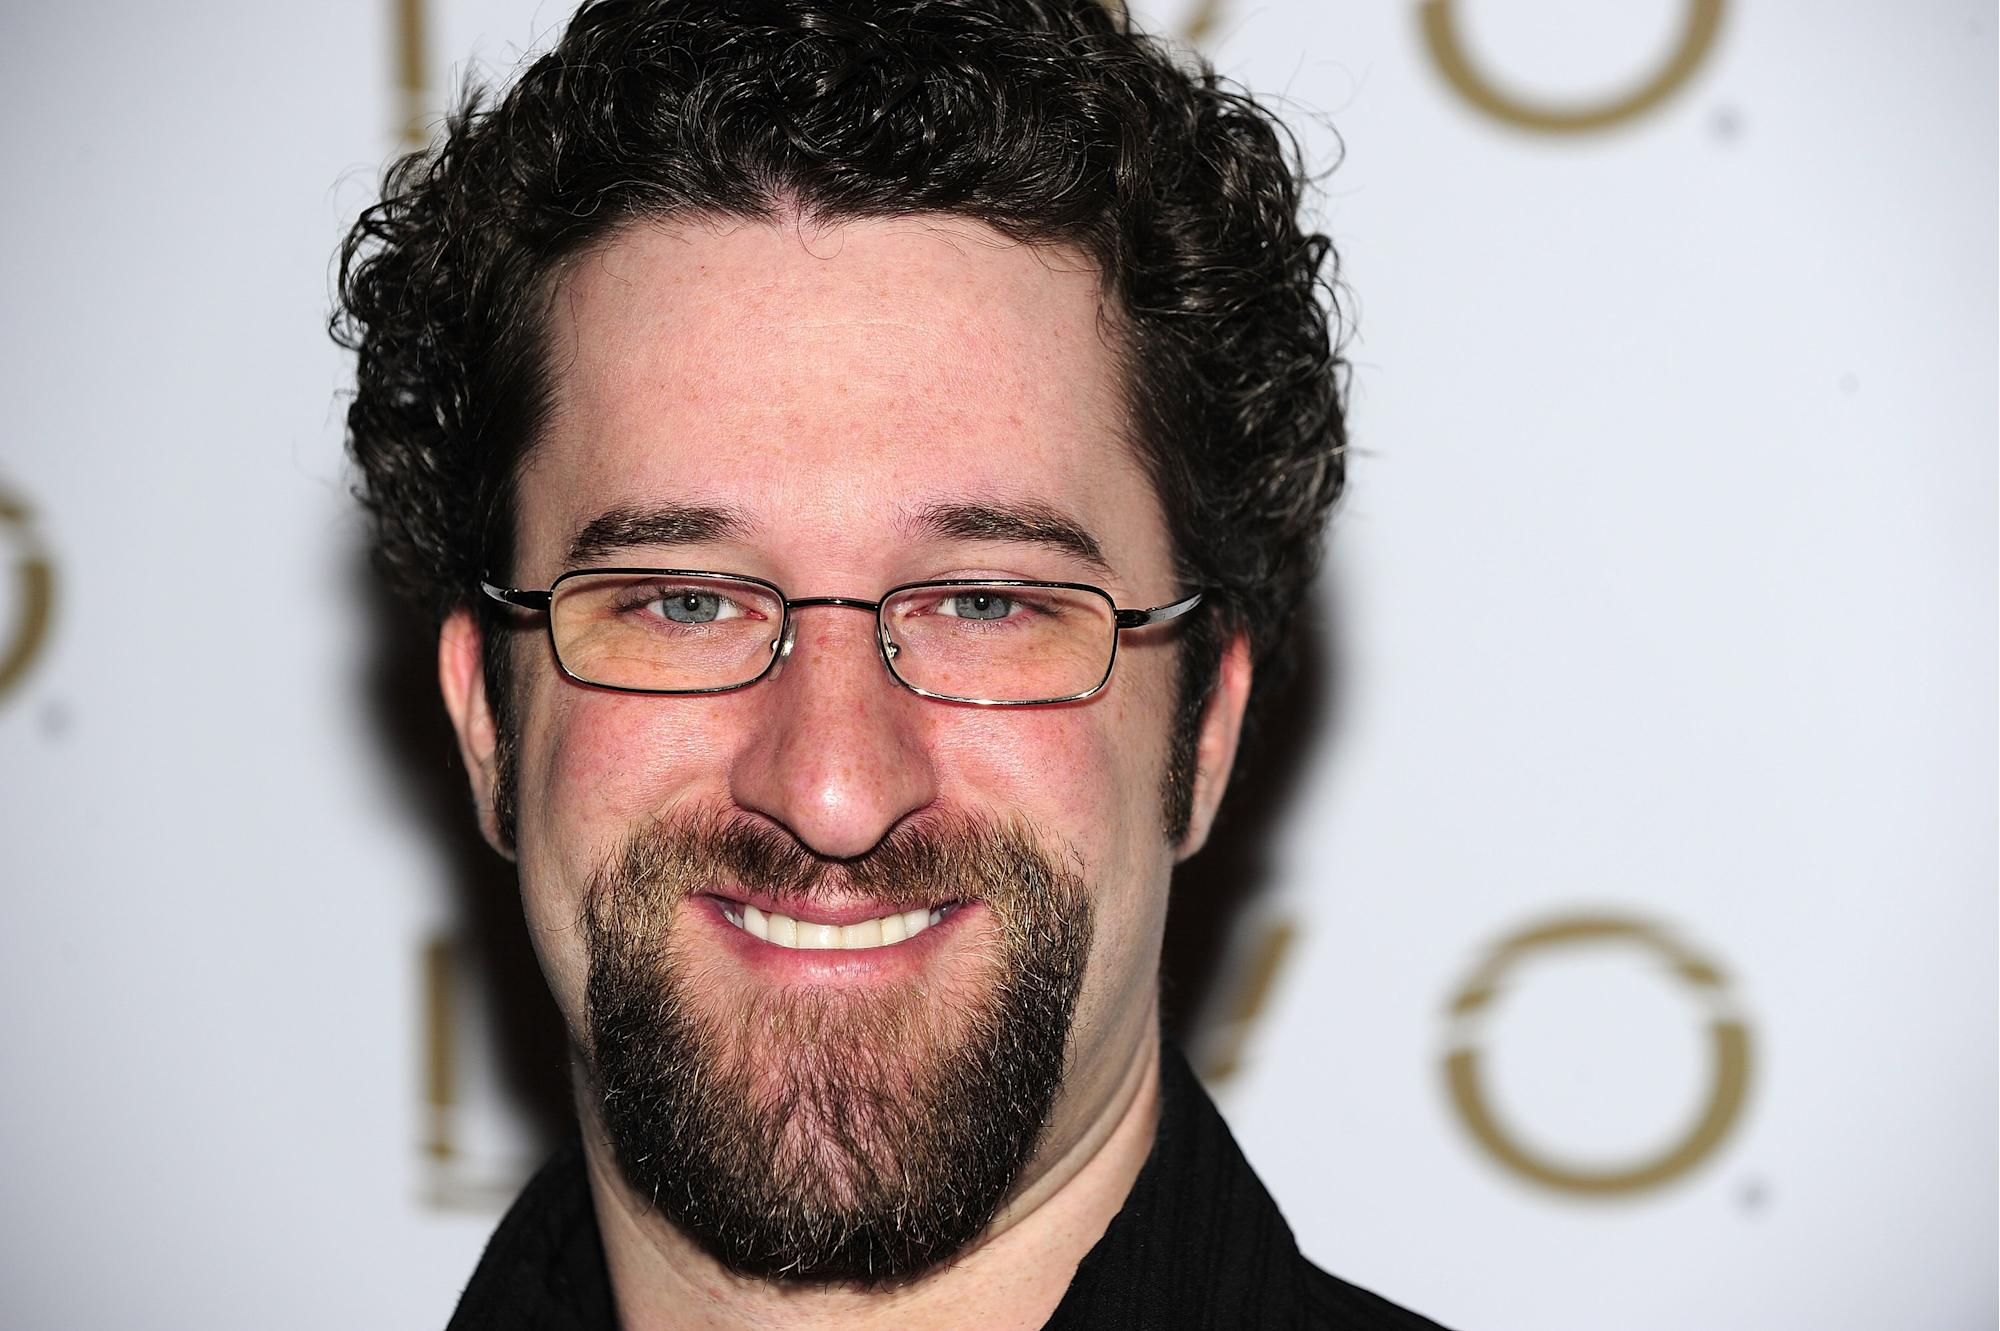 'Saved by the Bell' alum Dustin Diamond remains hospitalized as doctors run 'a ton of tests': Rep